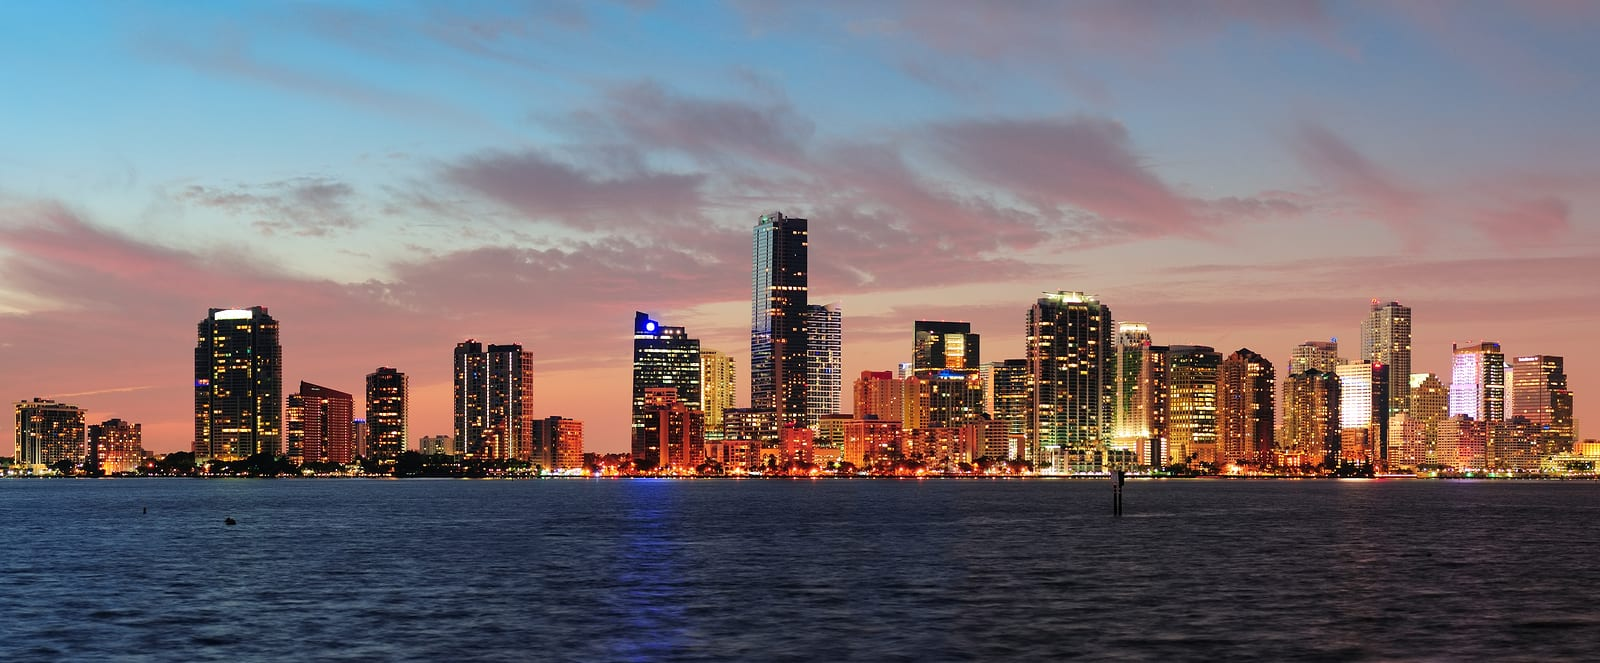 Top 10 Real Estate Teams / Agents with Most Recent Sales in Miami, Florida Area